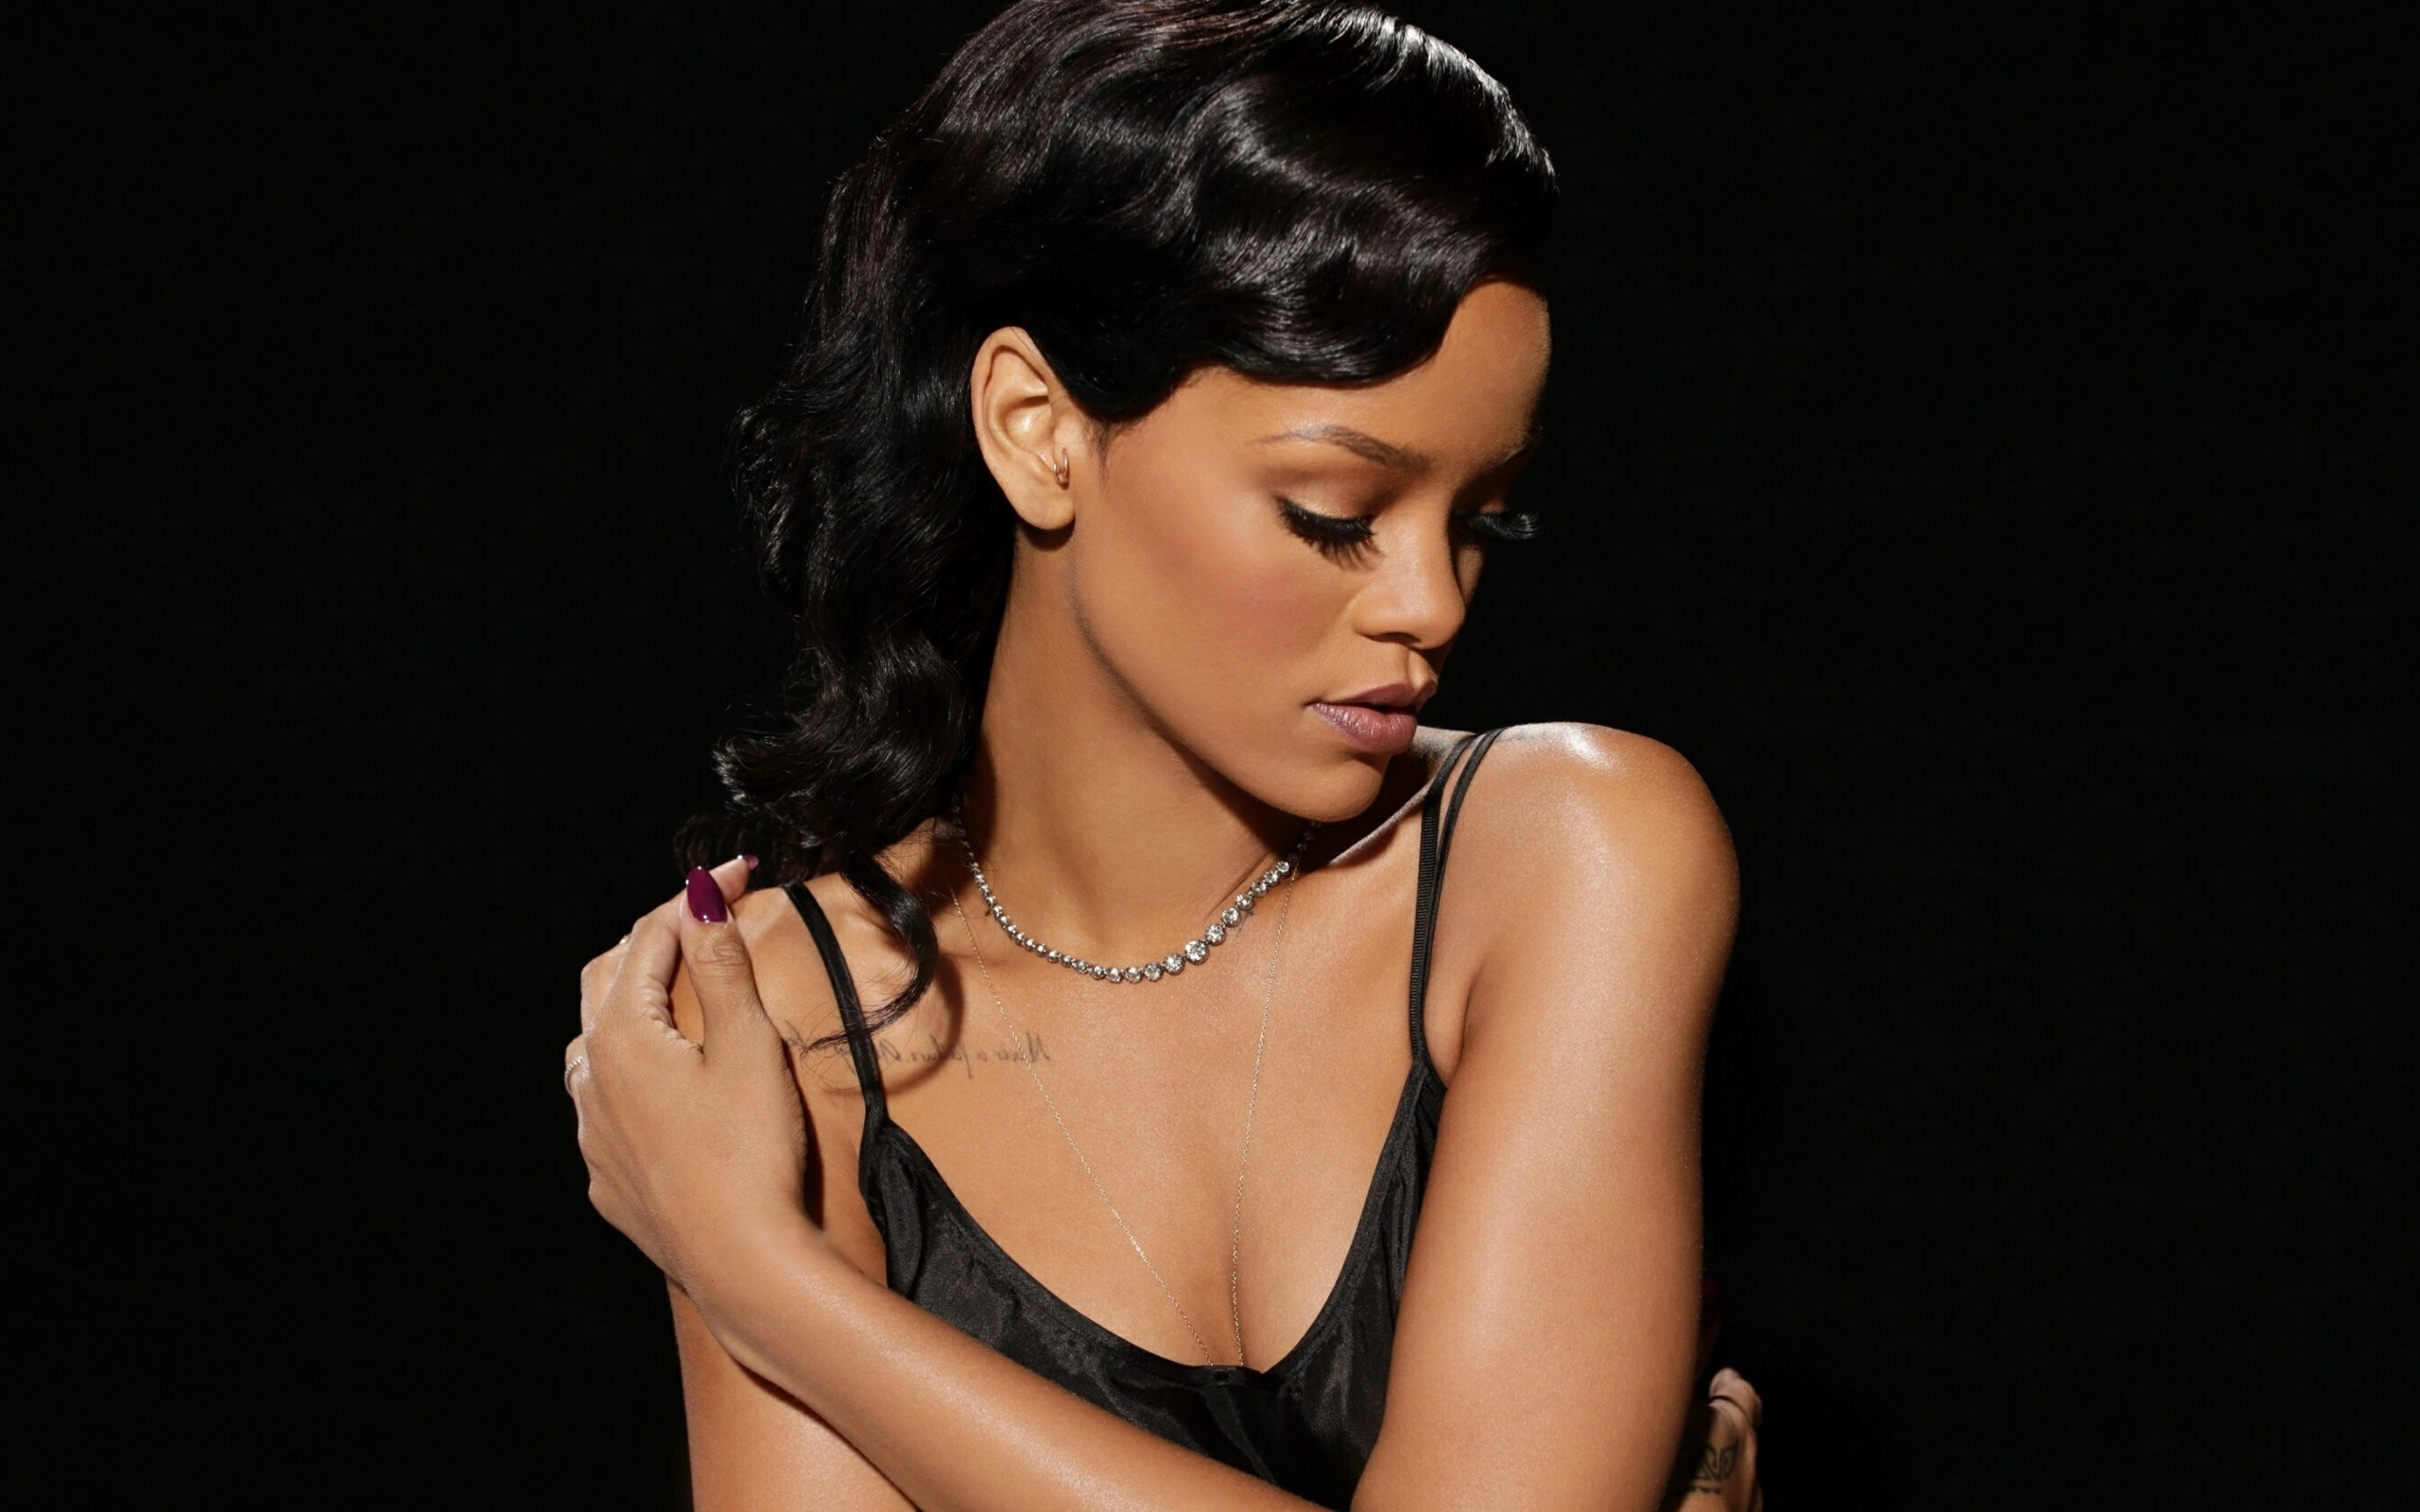 rihanna wallpaper hq wallpaper - photo #13